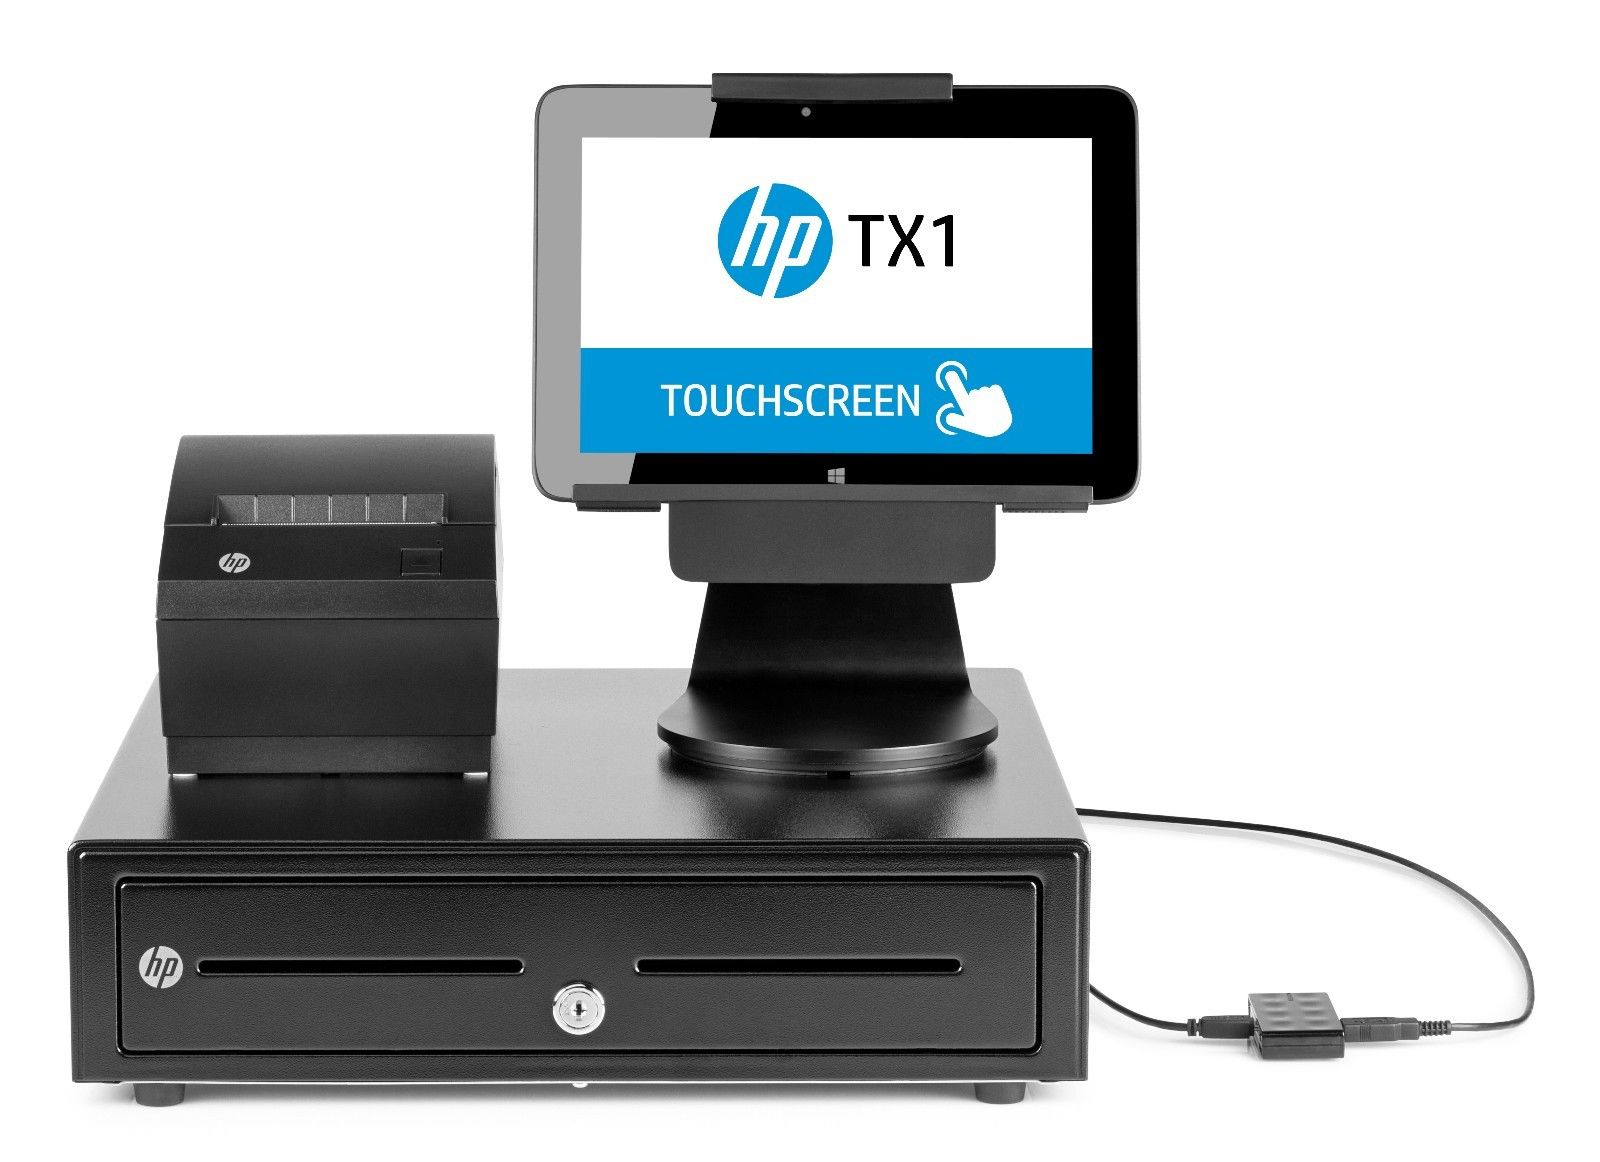 HP TX1 POS Solution - Brand New J7K81UA